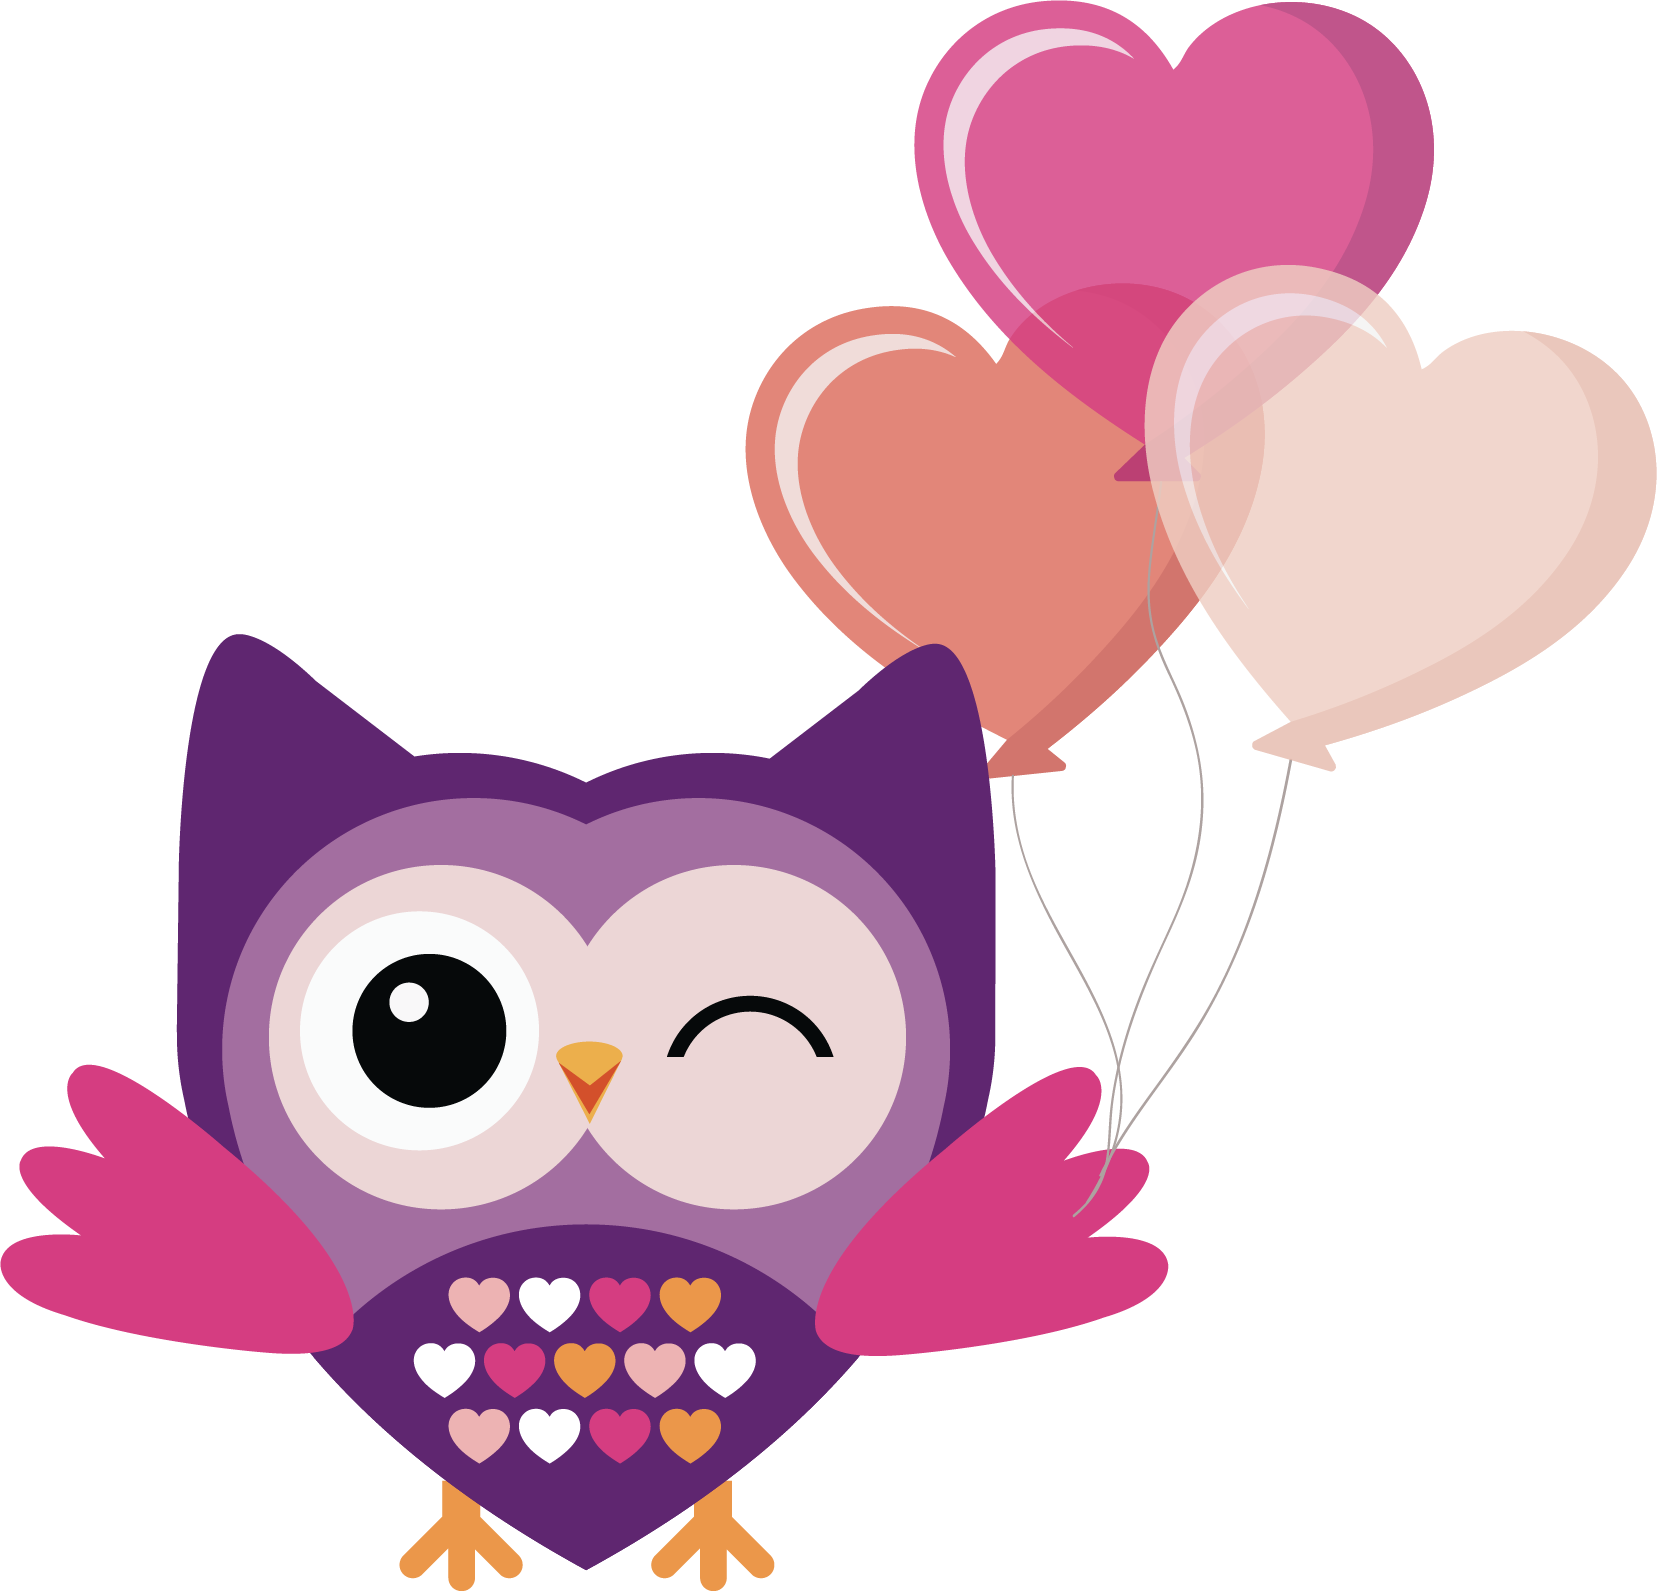 Pink owl png. Transparent free images only